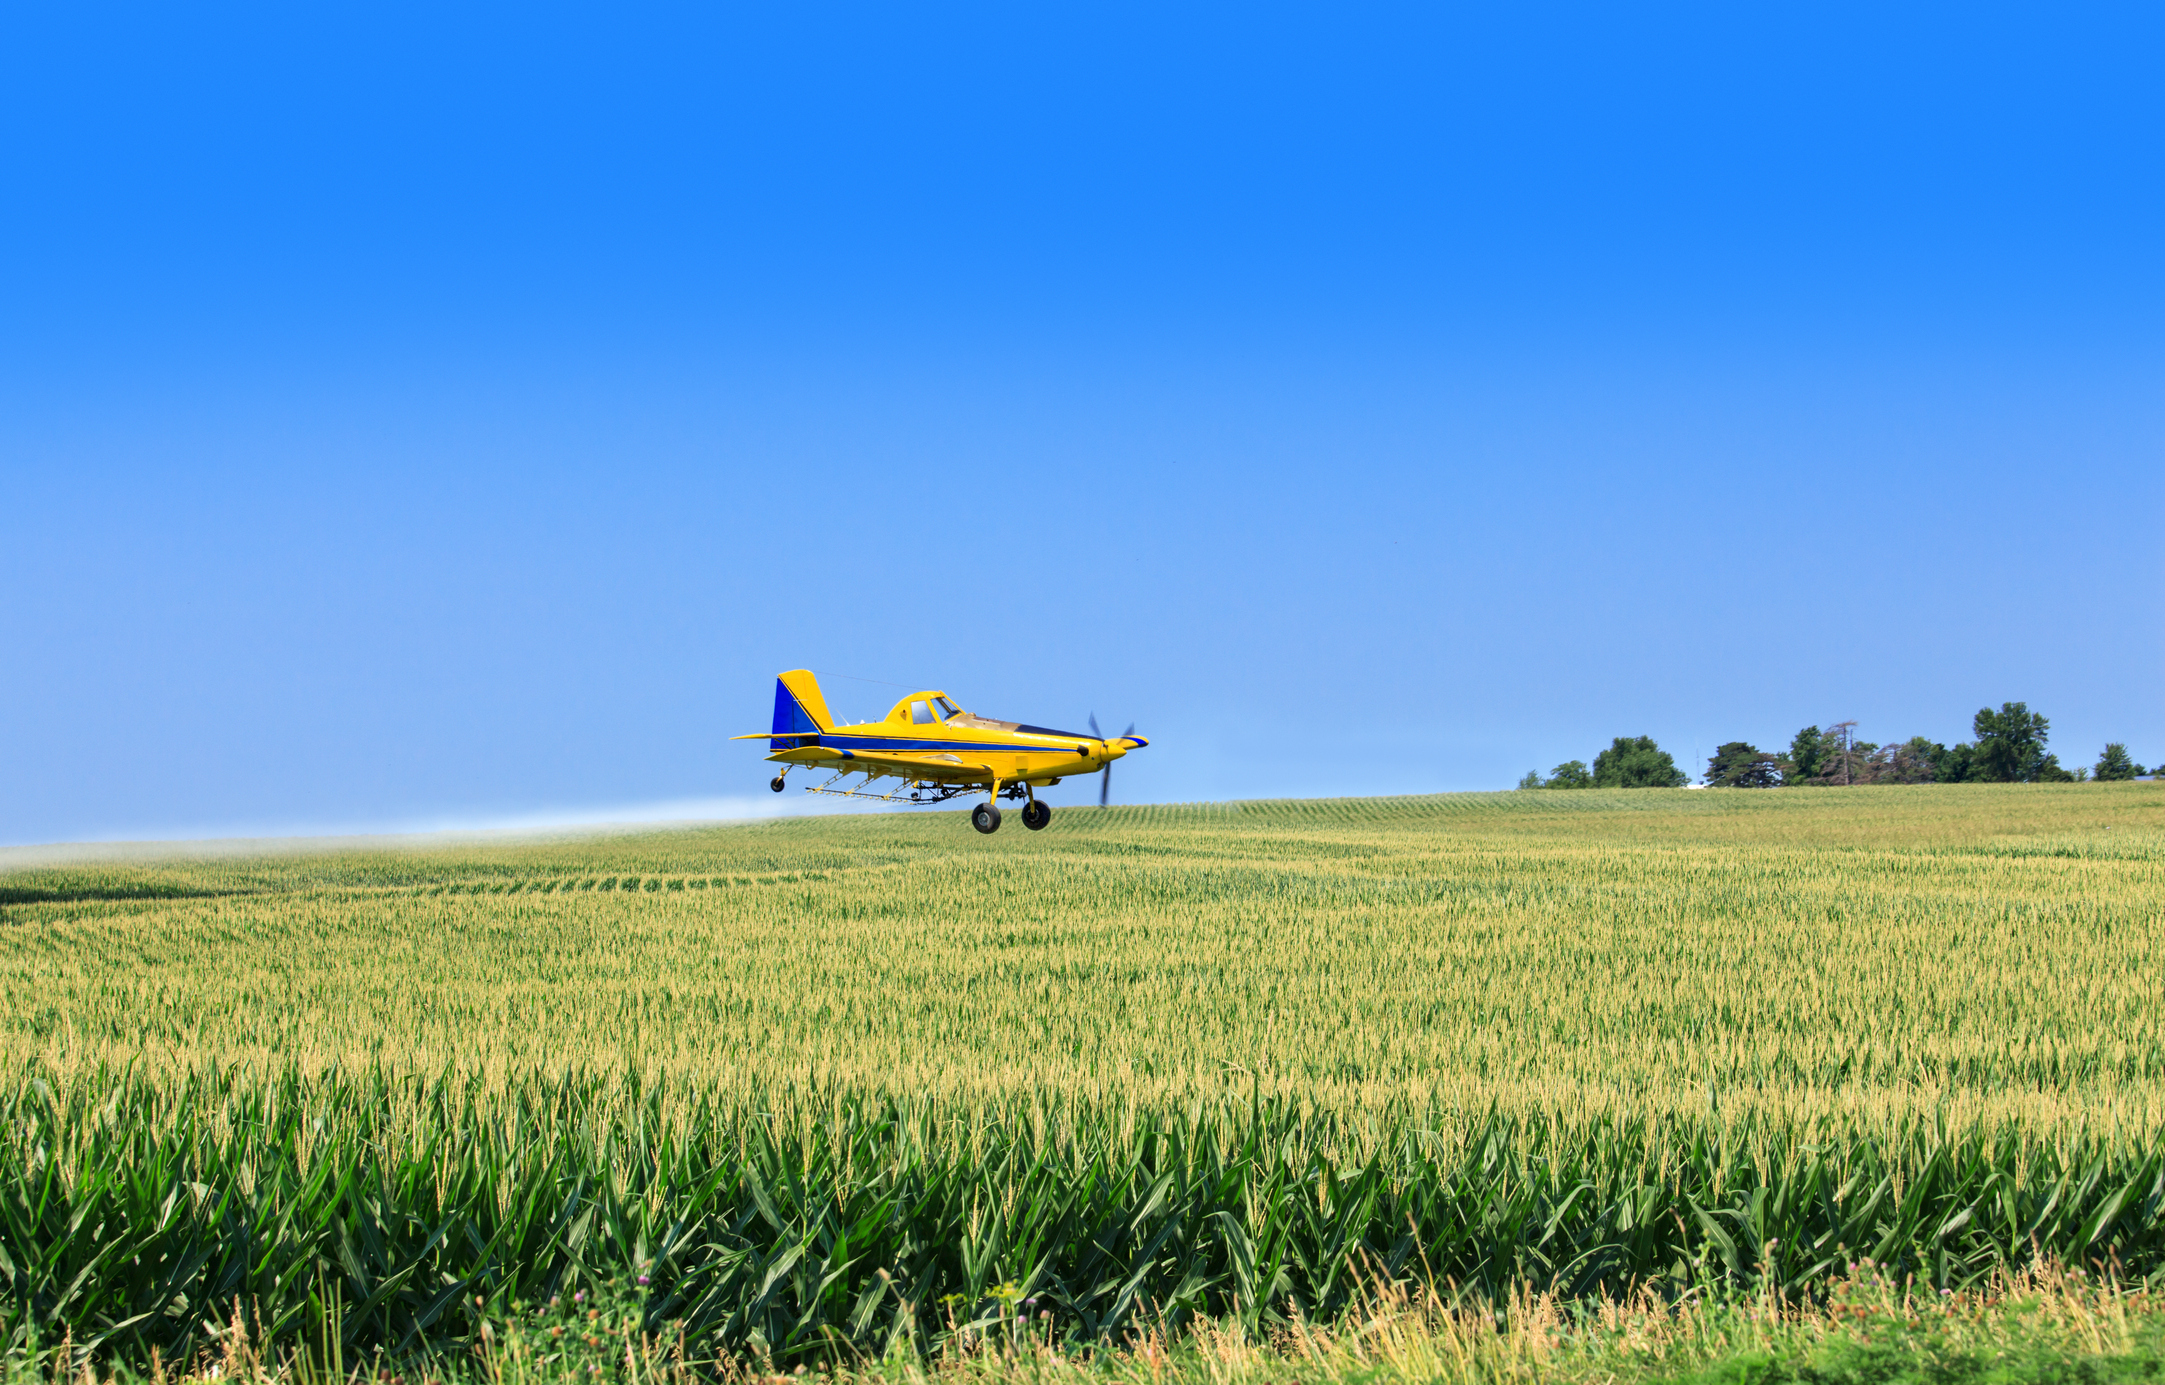 Crop-duster-airplane-175497368_2167x1386.jpeg